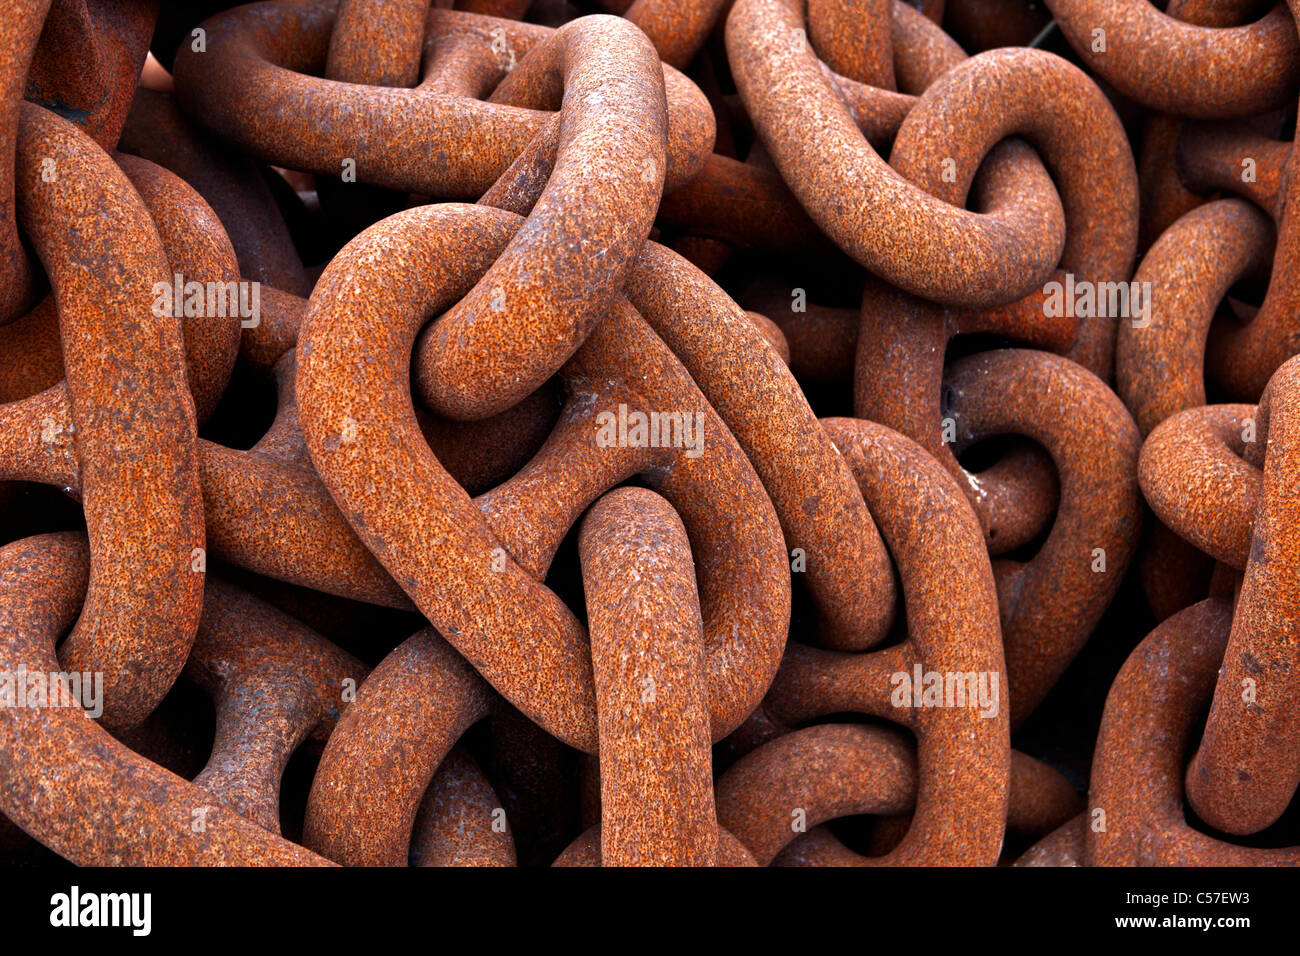 The Netherlands, Rotterdam, Port, Anchor chain of ship. - Stock Image